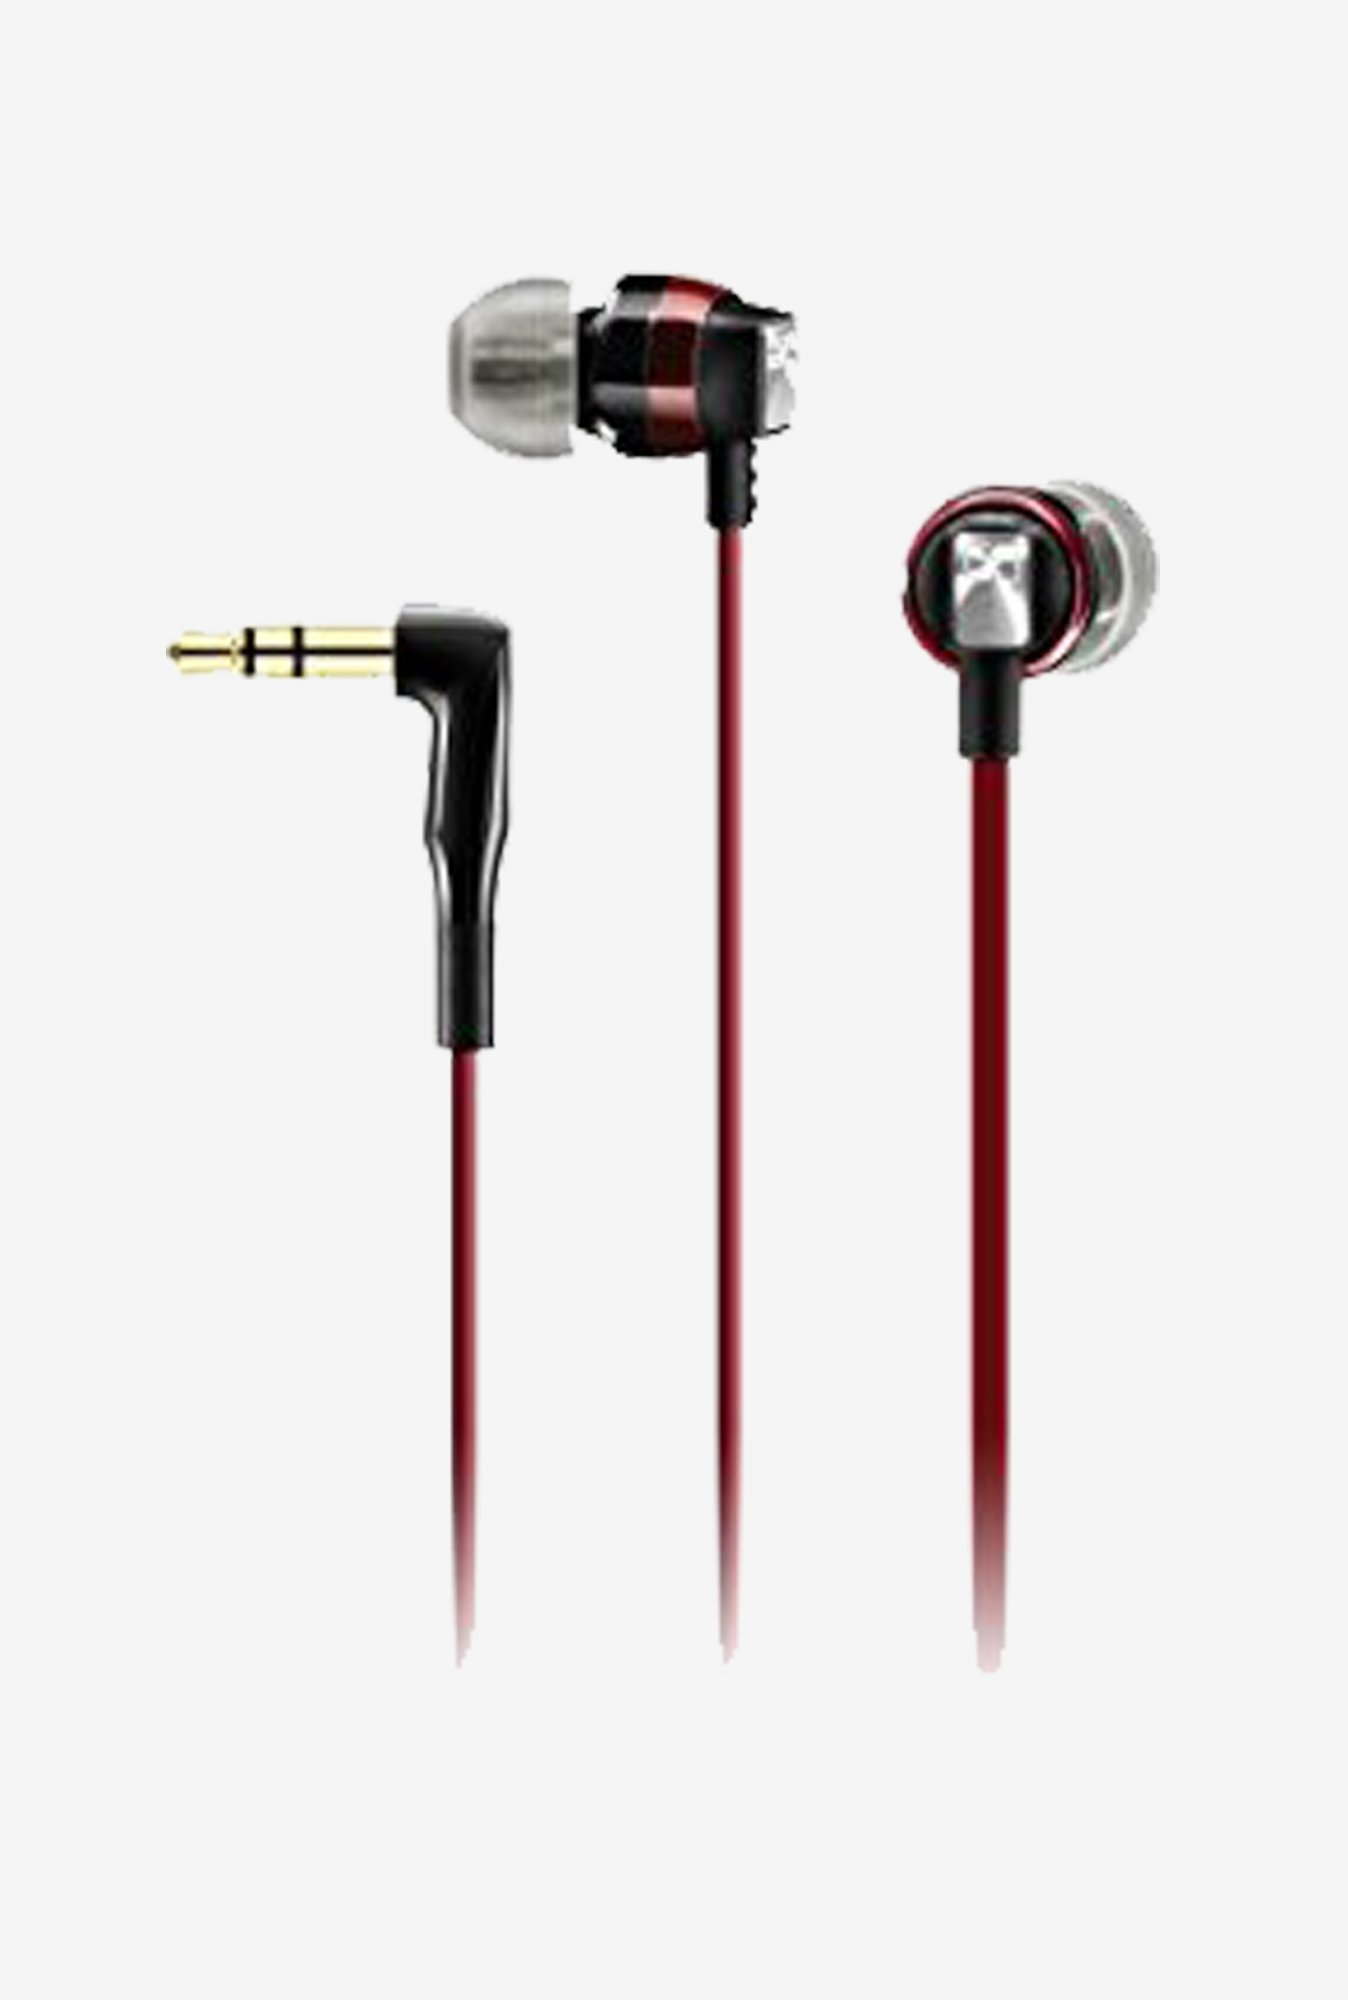 SOL REPUBLIC AMPS IN-EAR HEADPHONE WITH i4 ENGINE (BLACK)